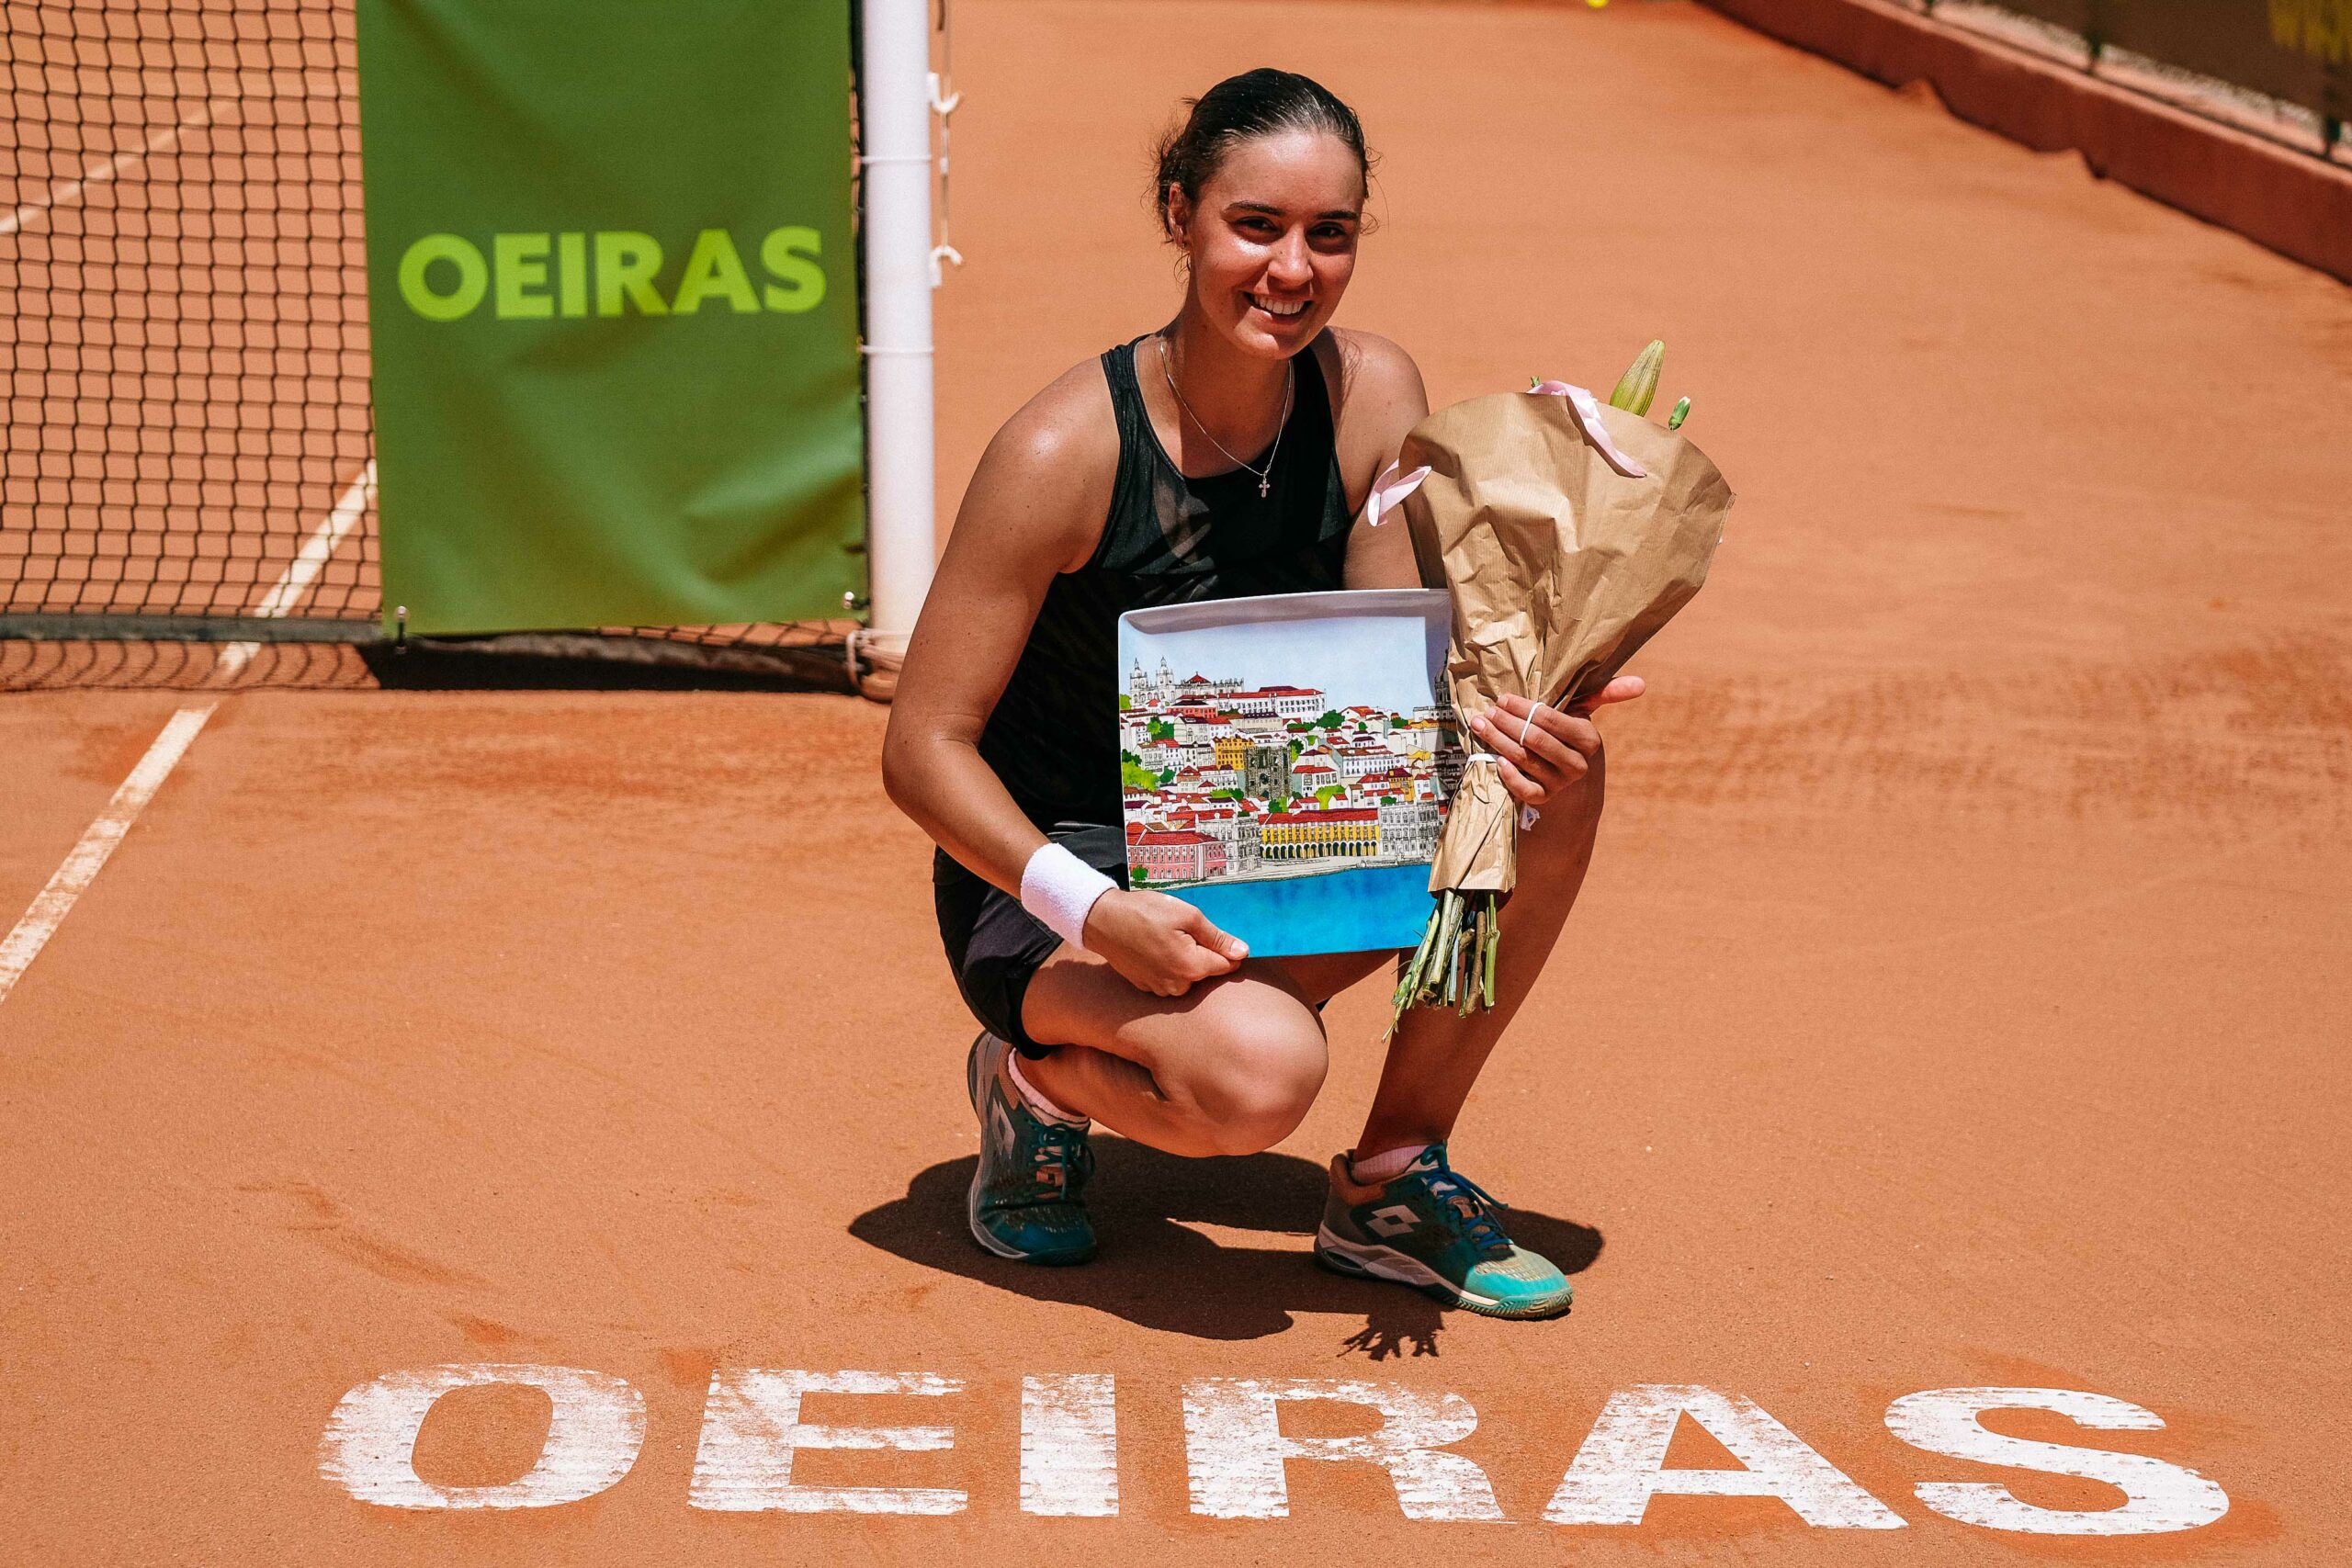 https://www.tennis-tourtalk.com/wp-content/uploads/2021/04/Anhelina-Kalinina-com-trofeu-scaled.jpg